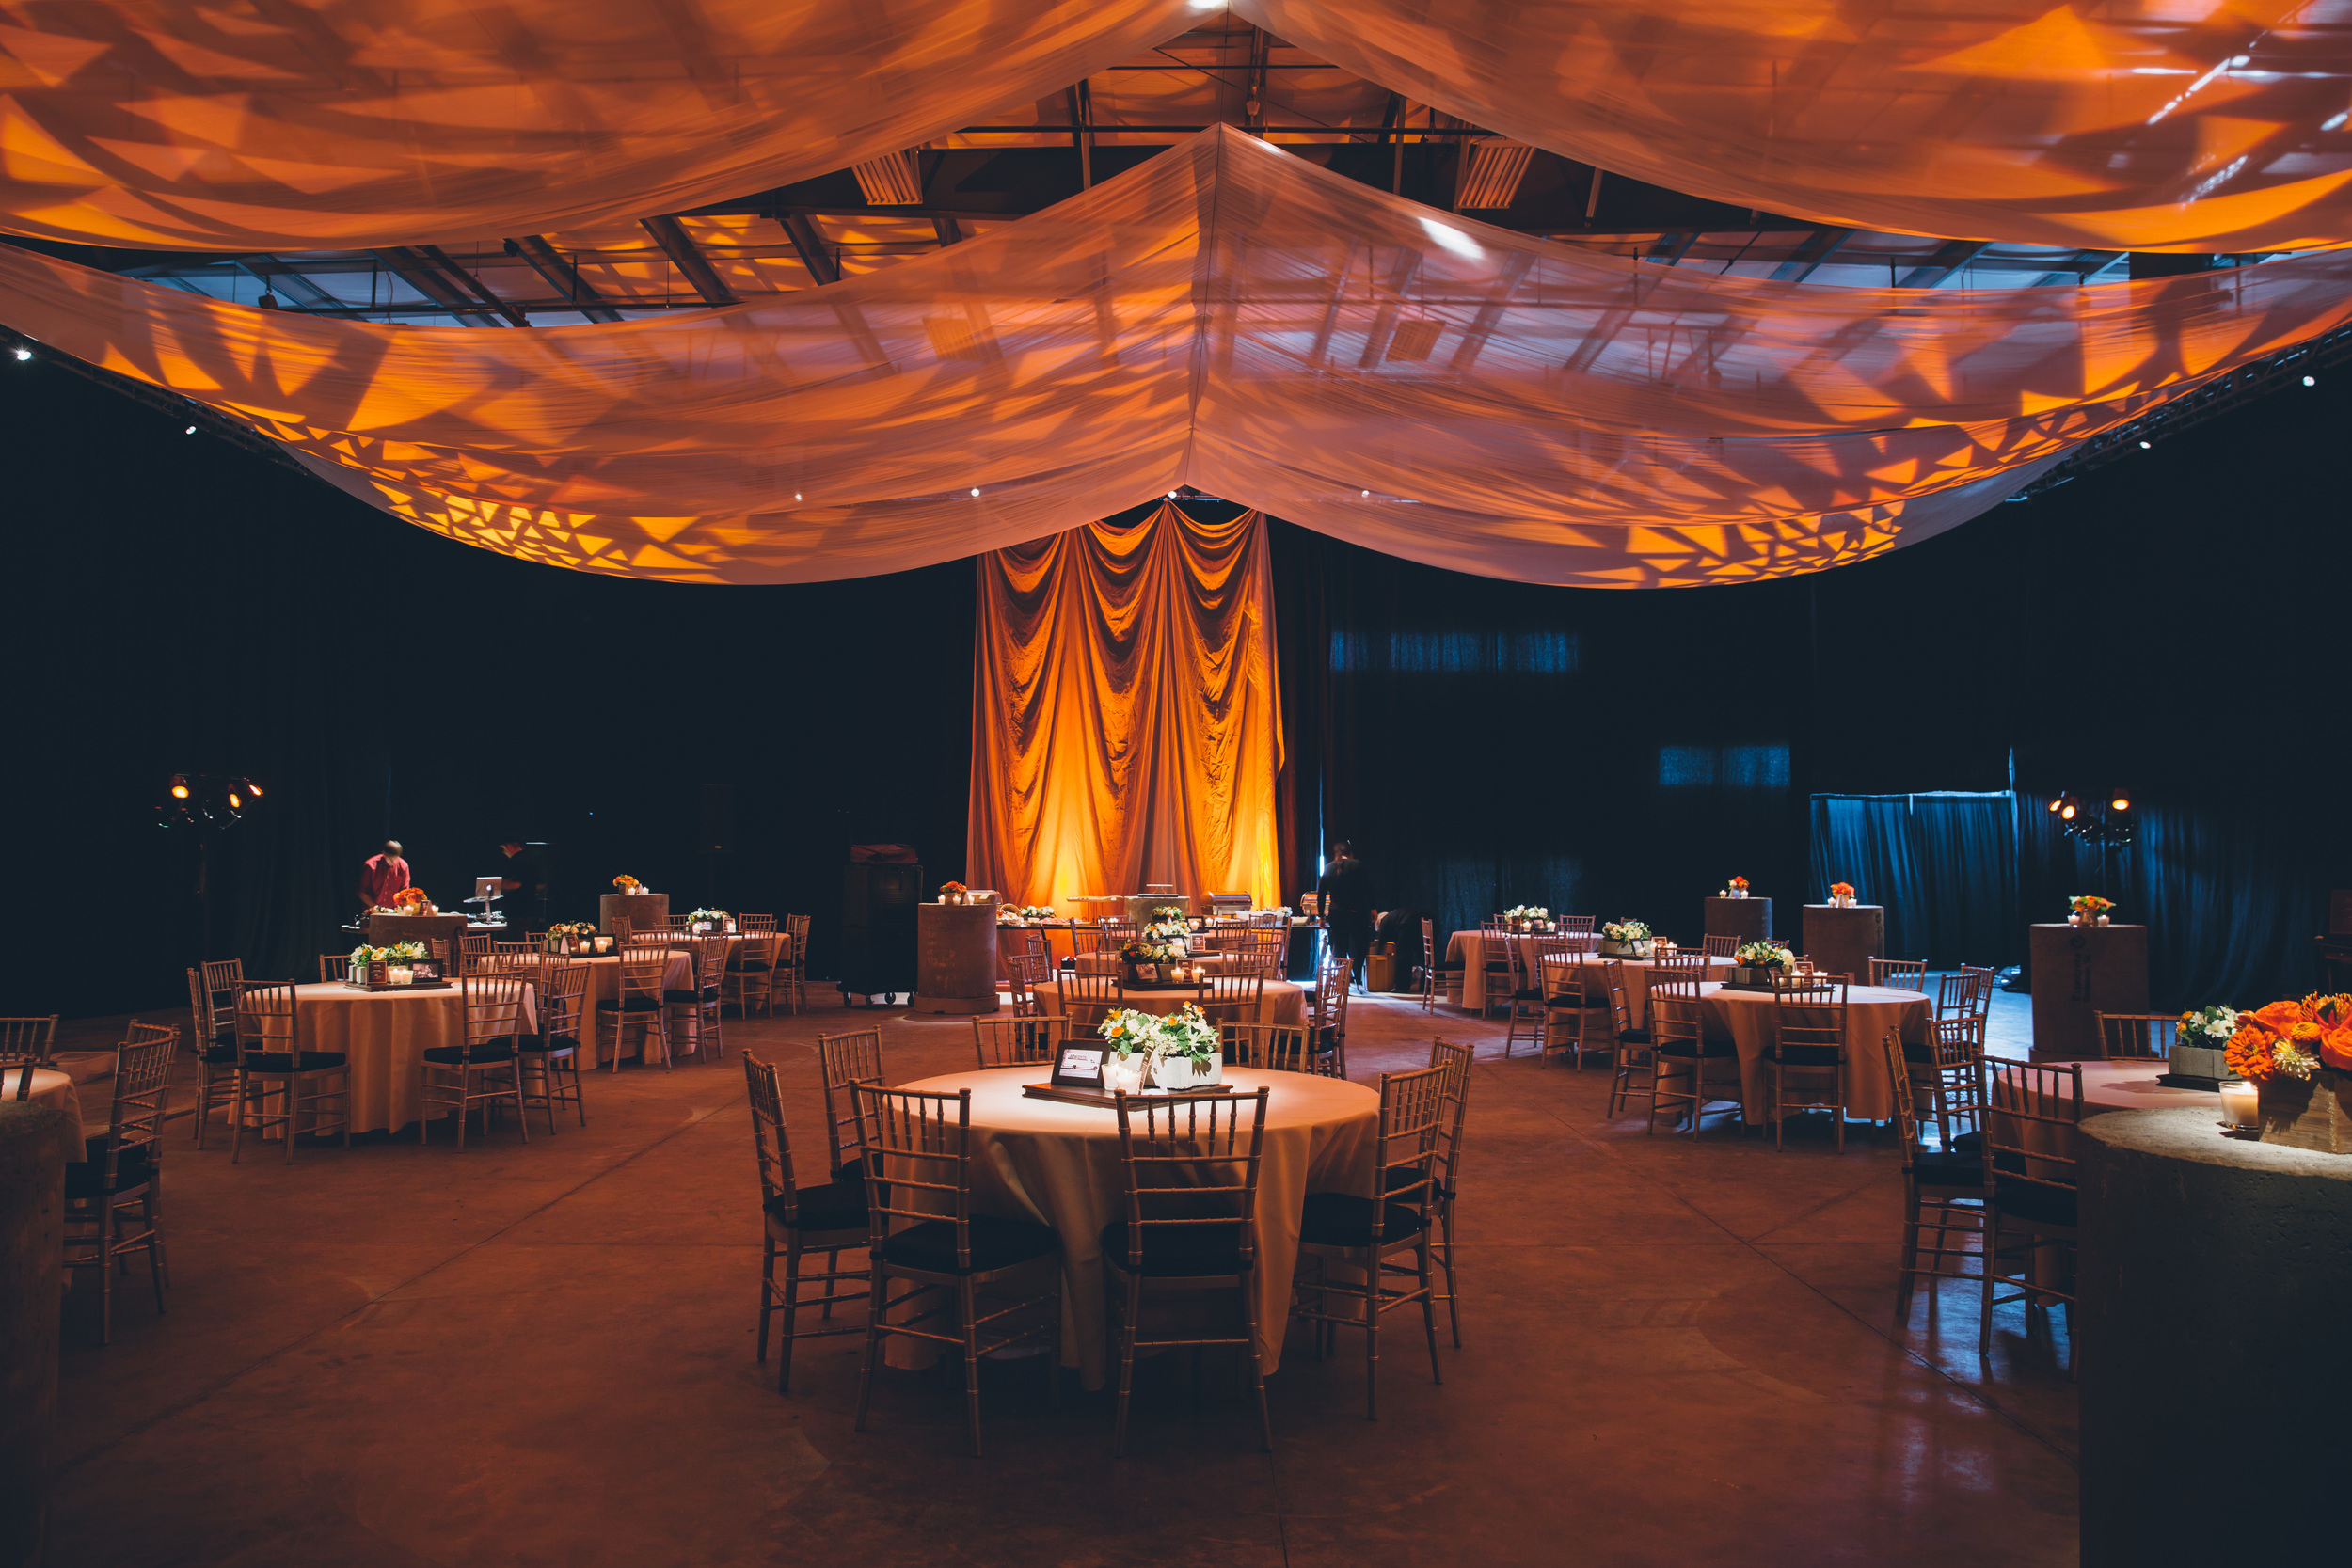 Here we have spot lighting on every table, uplighting on the draping and a pattern on the ceiling for interest. It's amazing what lighting can do to a space!